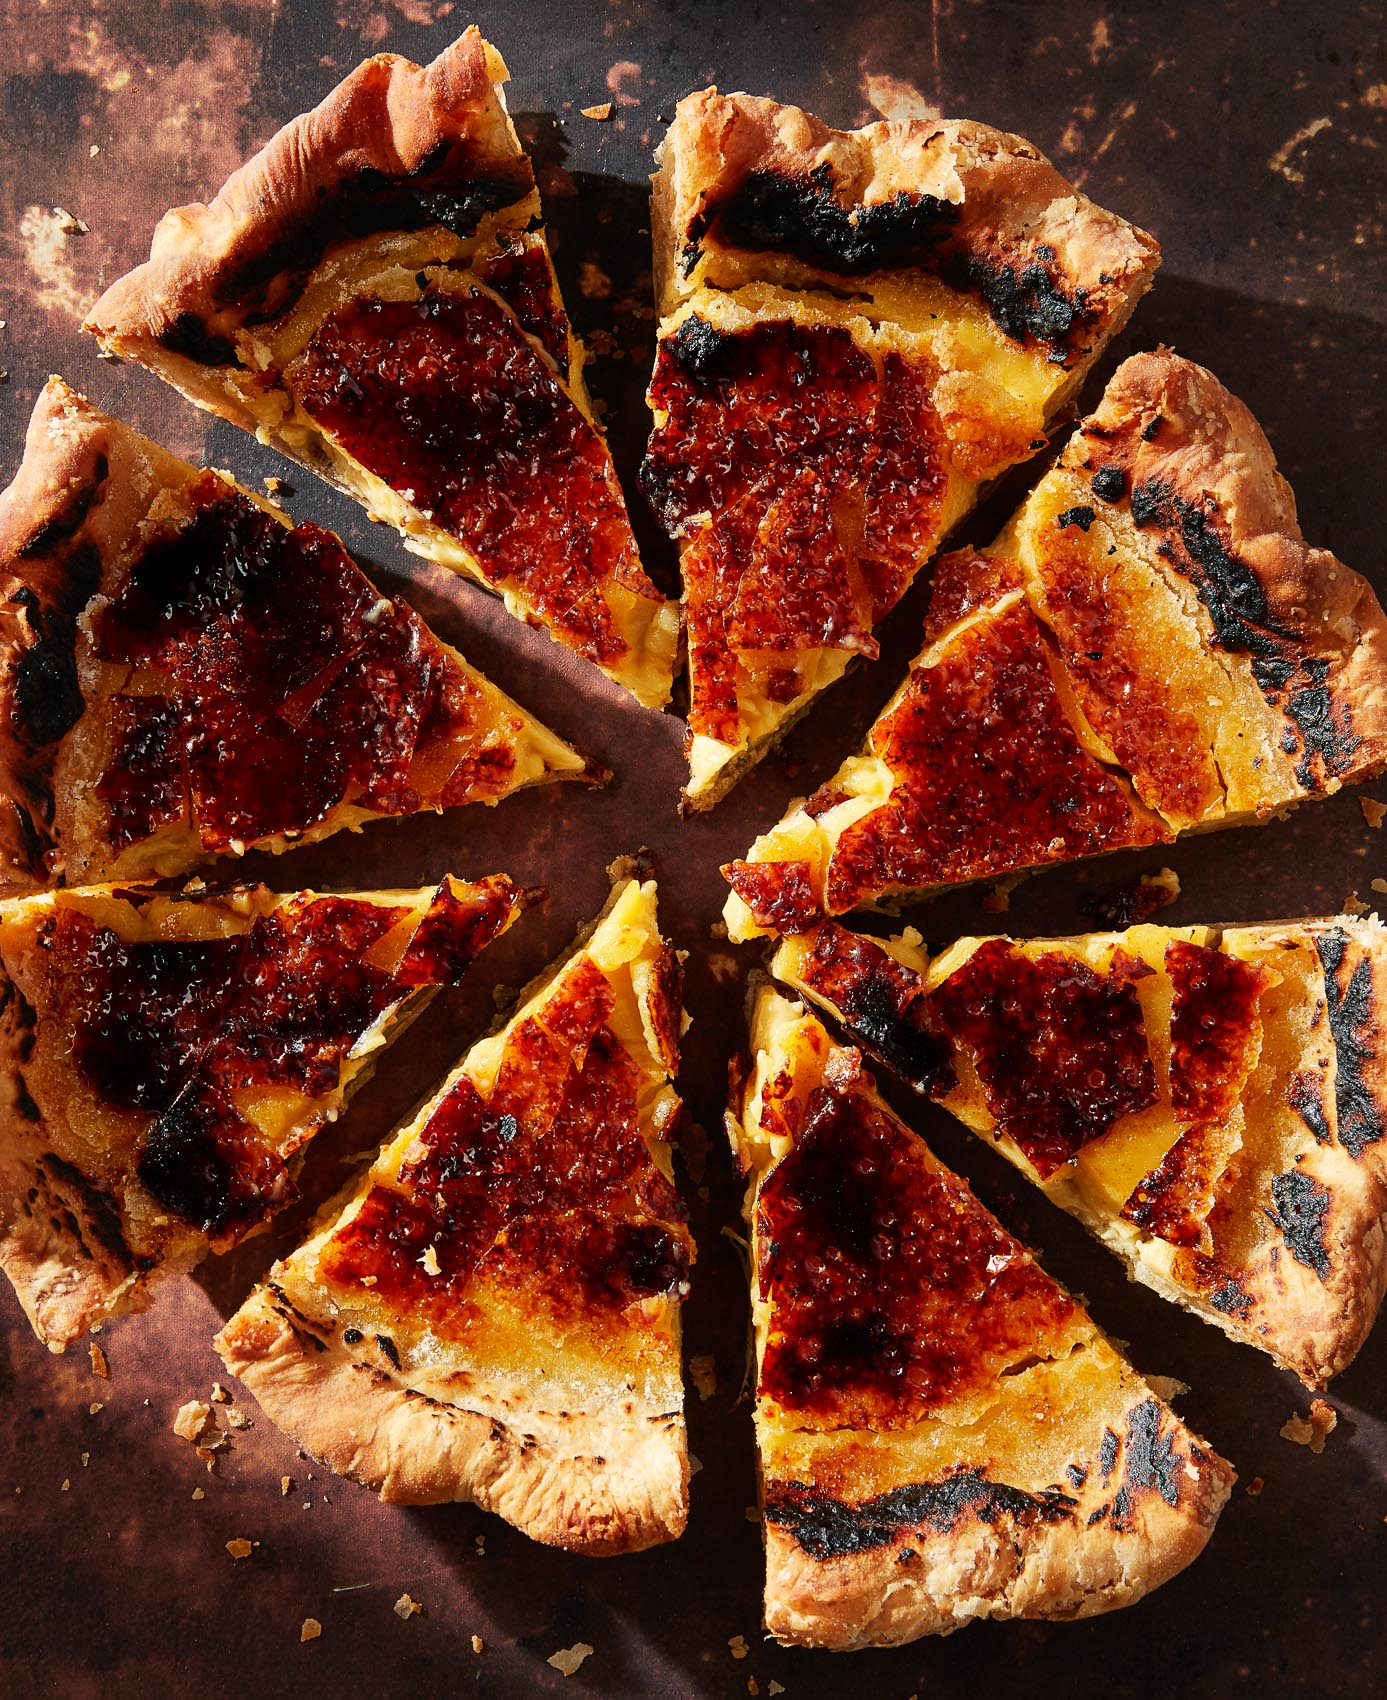 CH4_Cardamom-Creme-Brulee_erin-mcdowell_book-on-pie_2019-11-05_mark-weinberg_1494